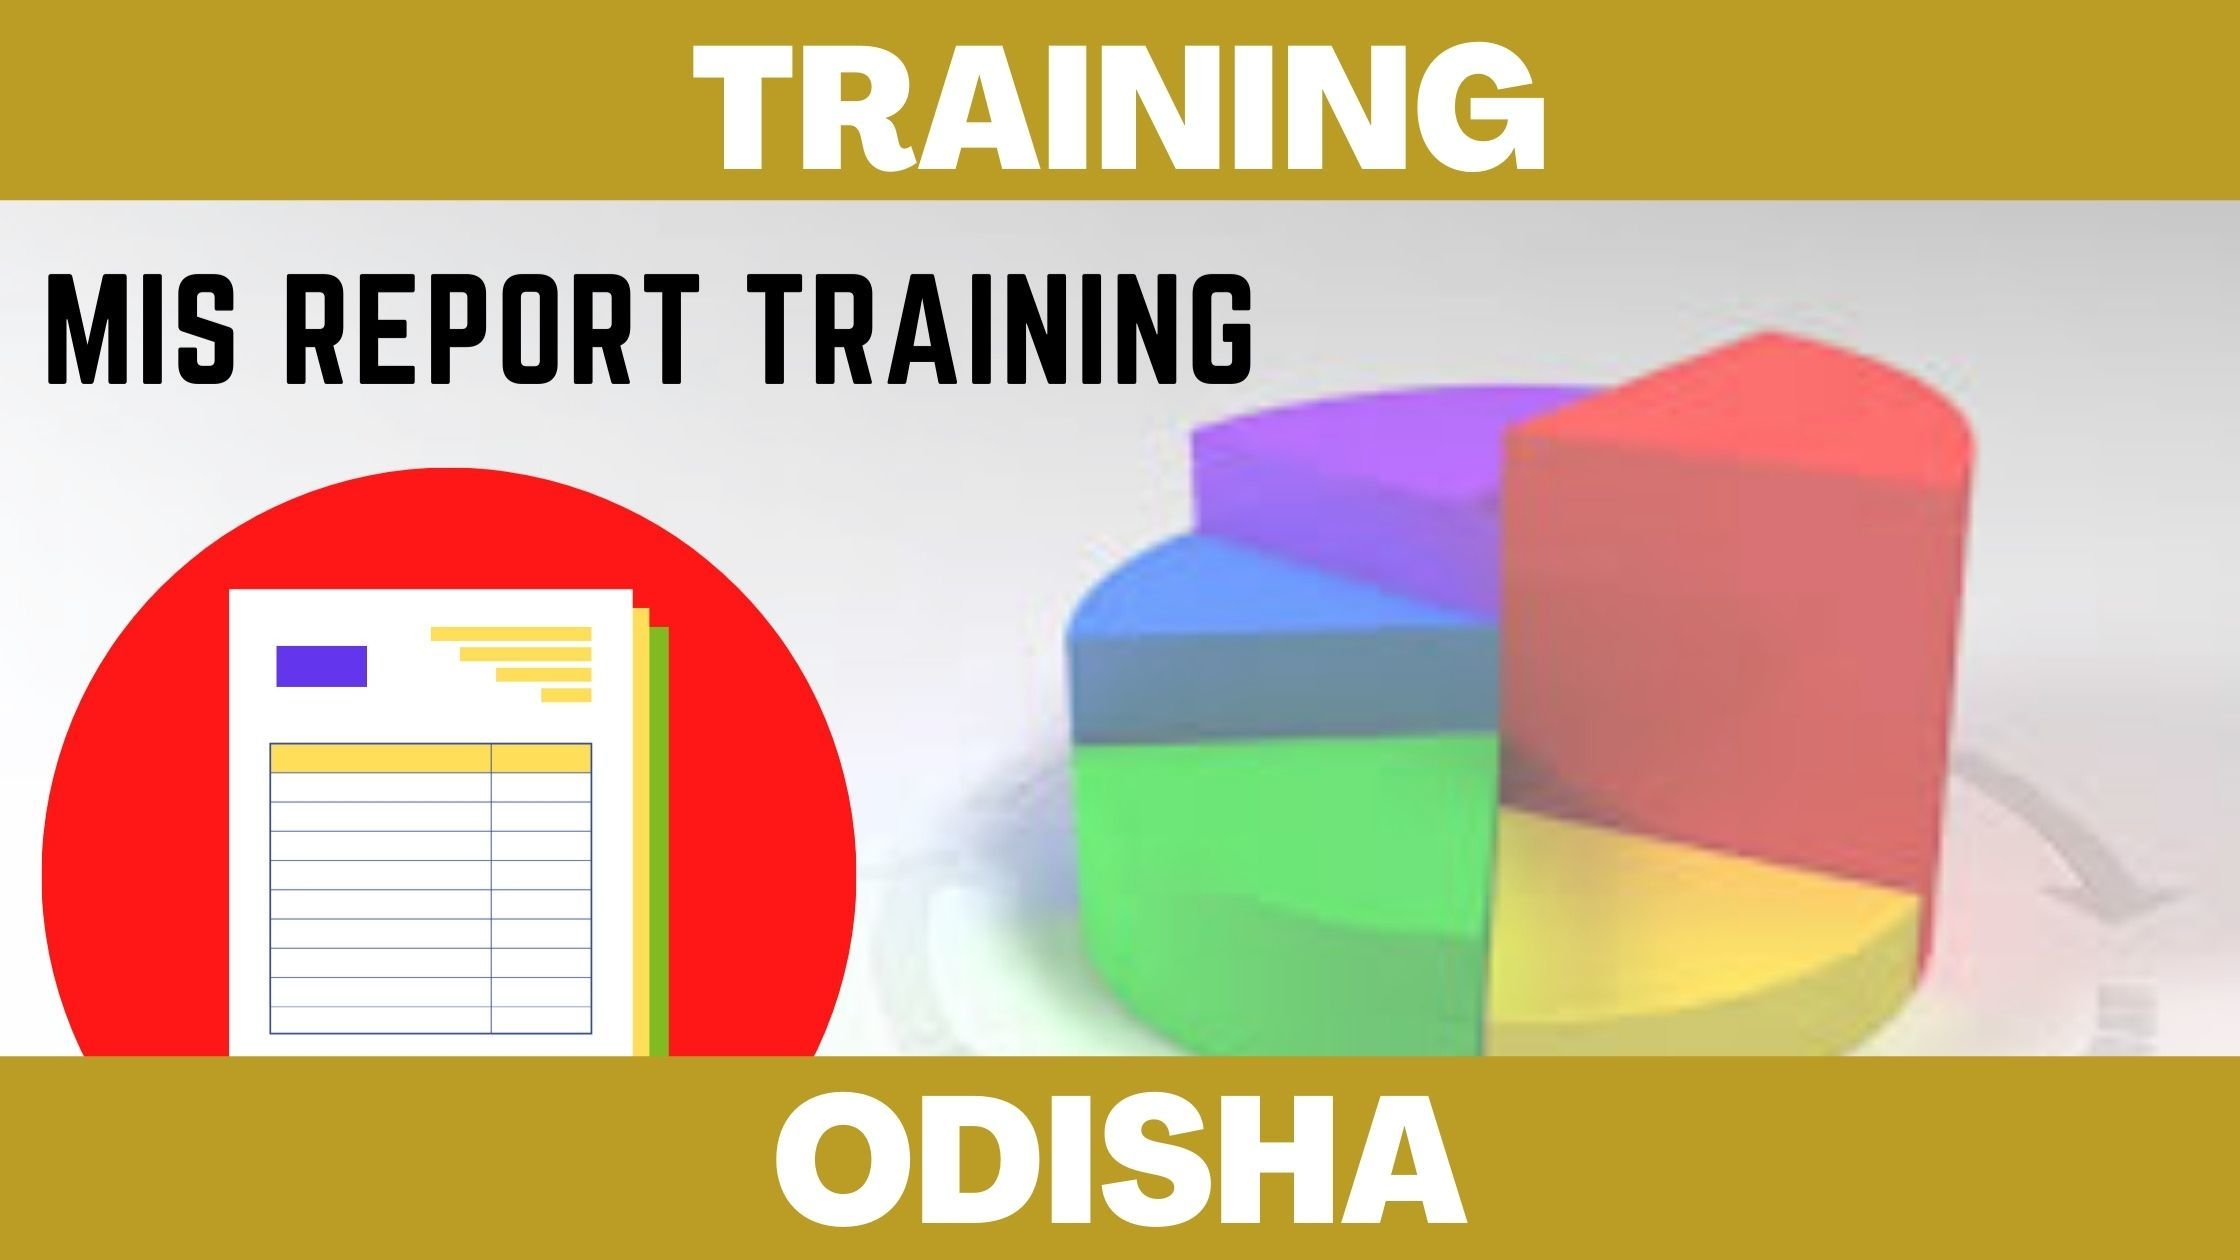 mis report training_in_odisha-background.jpeg